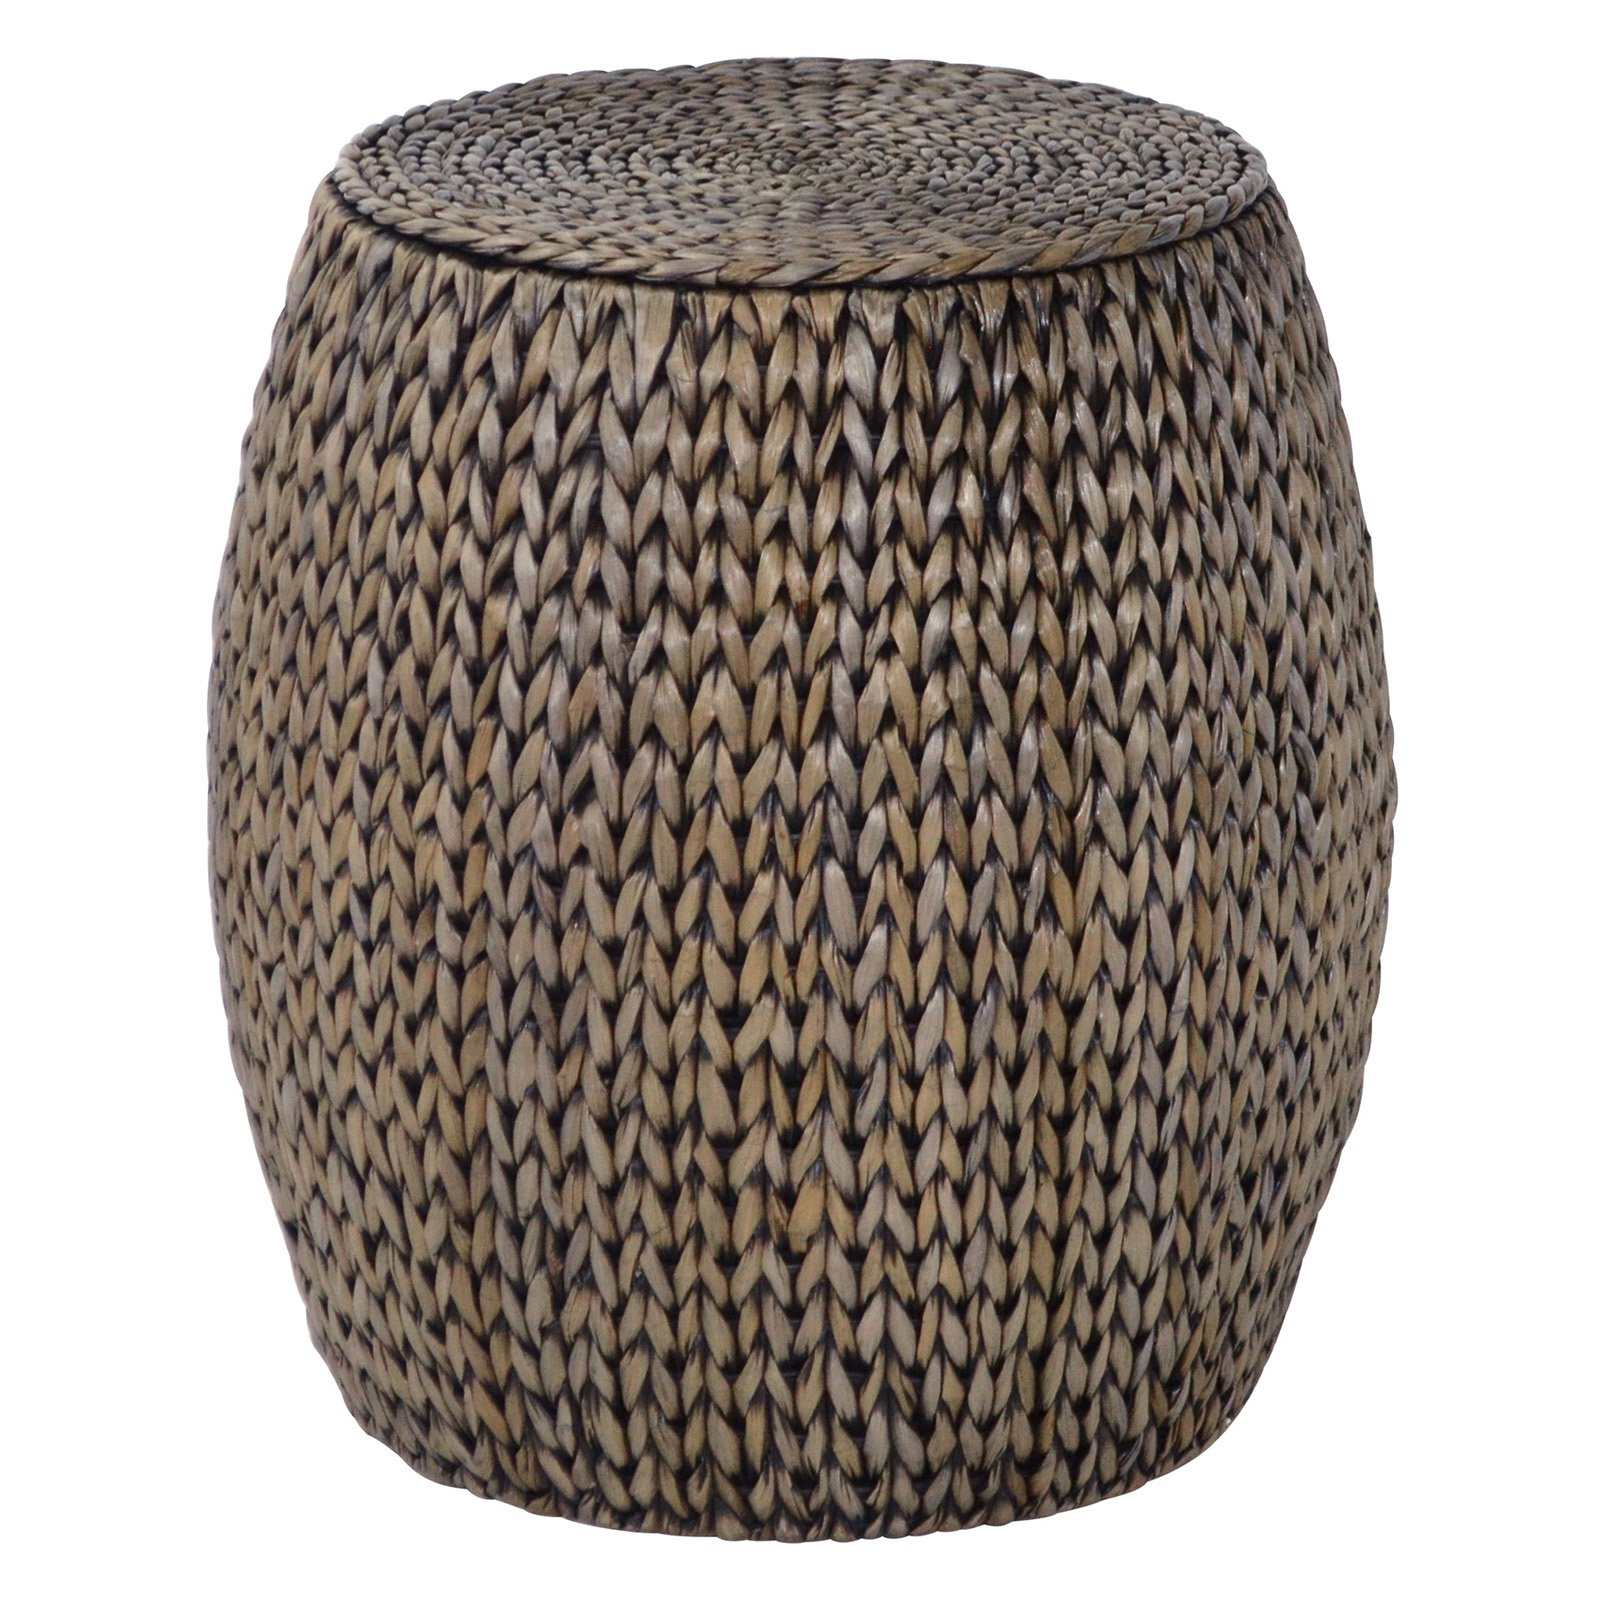 Gallerie Dcor Gallerie Decor Tall Drum Accent Table